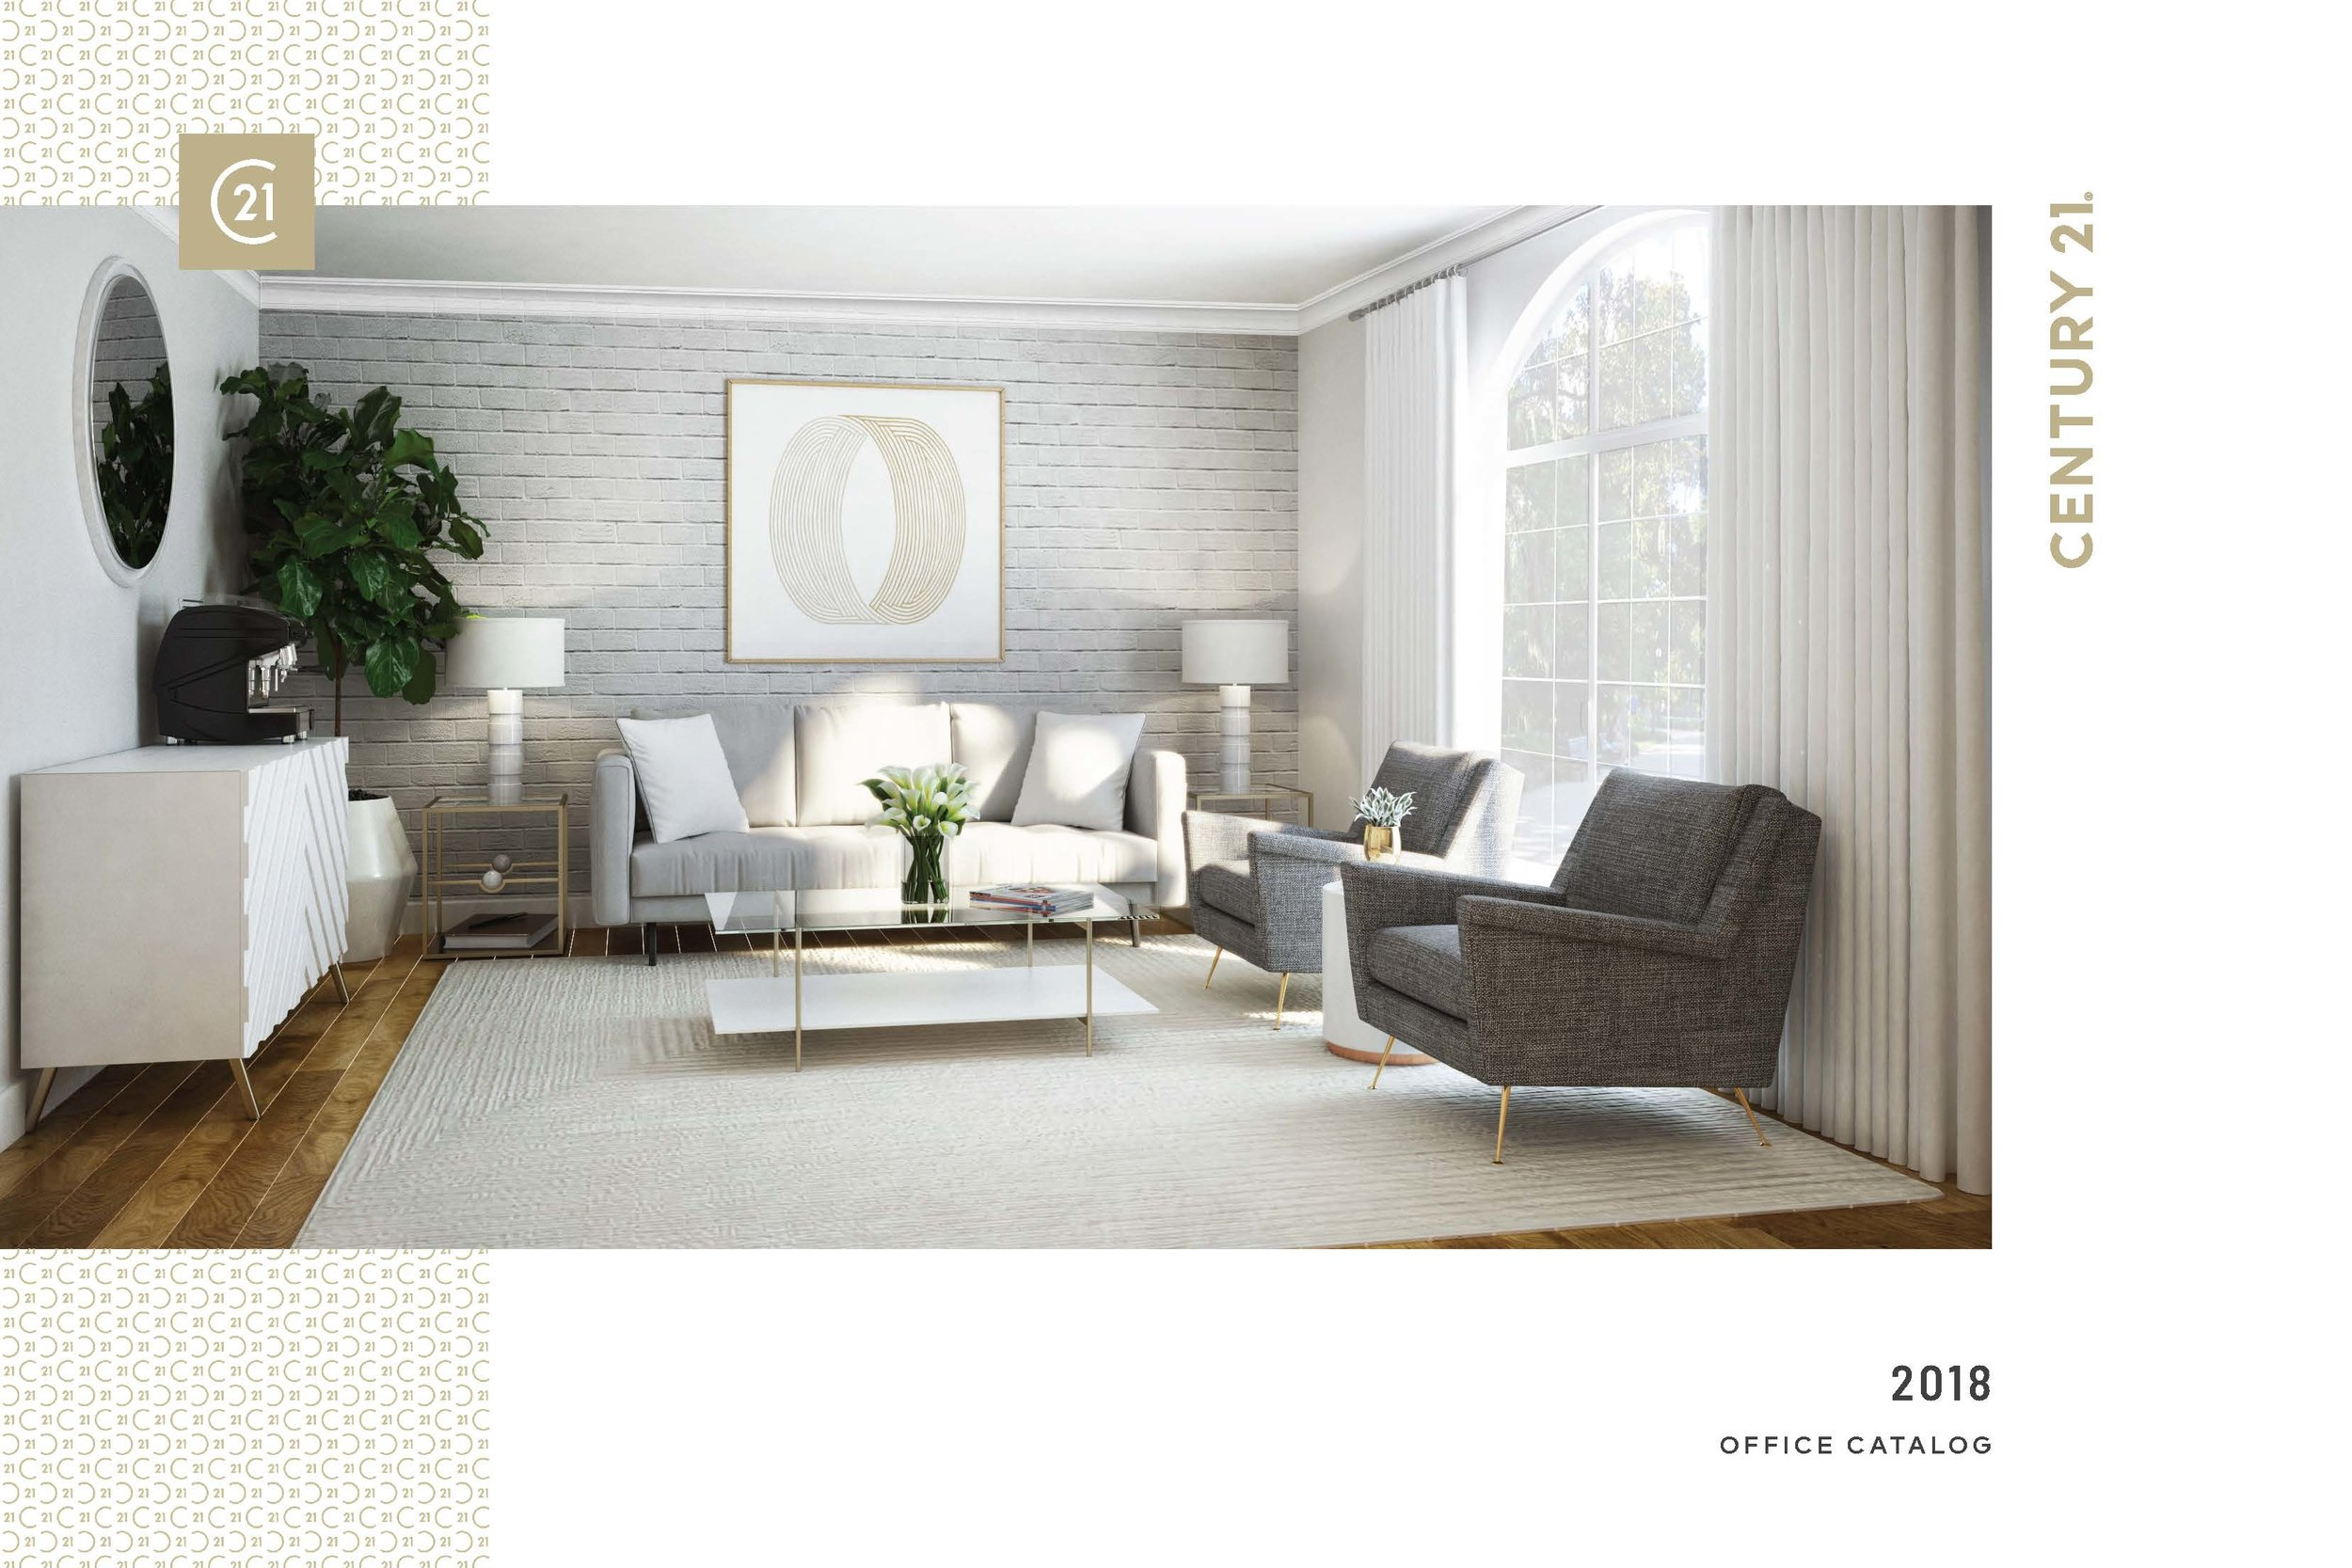 Scope : JSD partnered with Century 21 Real Estate® and Homepolish to create a unique brand book with custom designs and styles for the interiors of their offices. The brand book was distributed and designs implemented nationally.